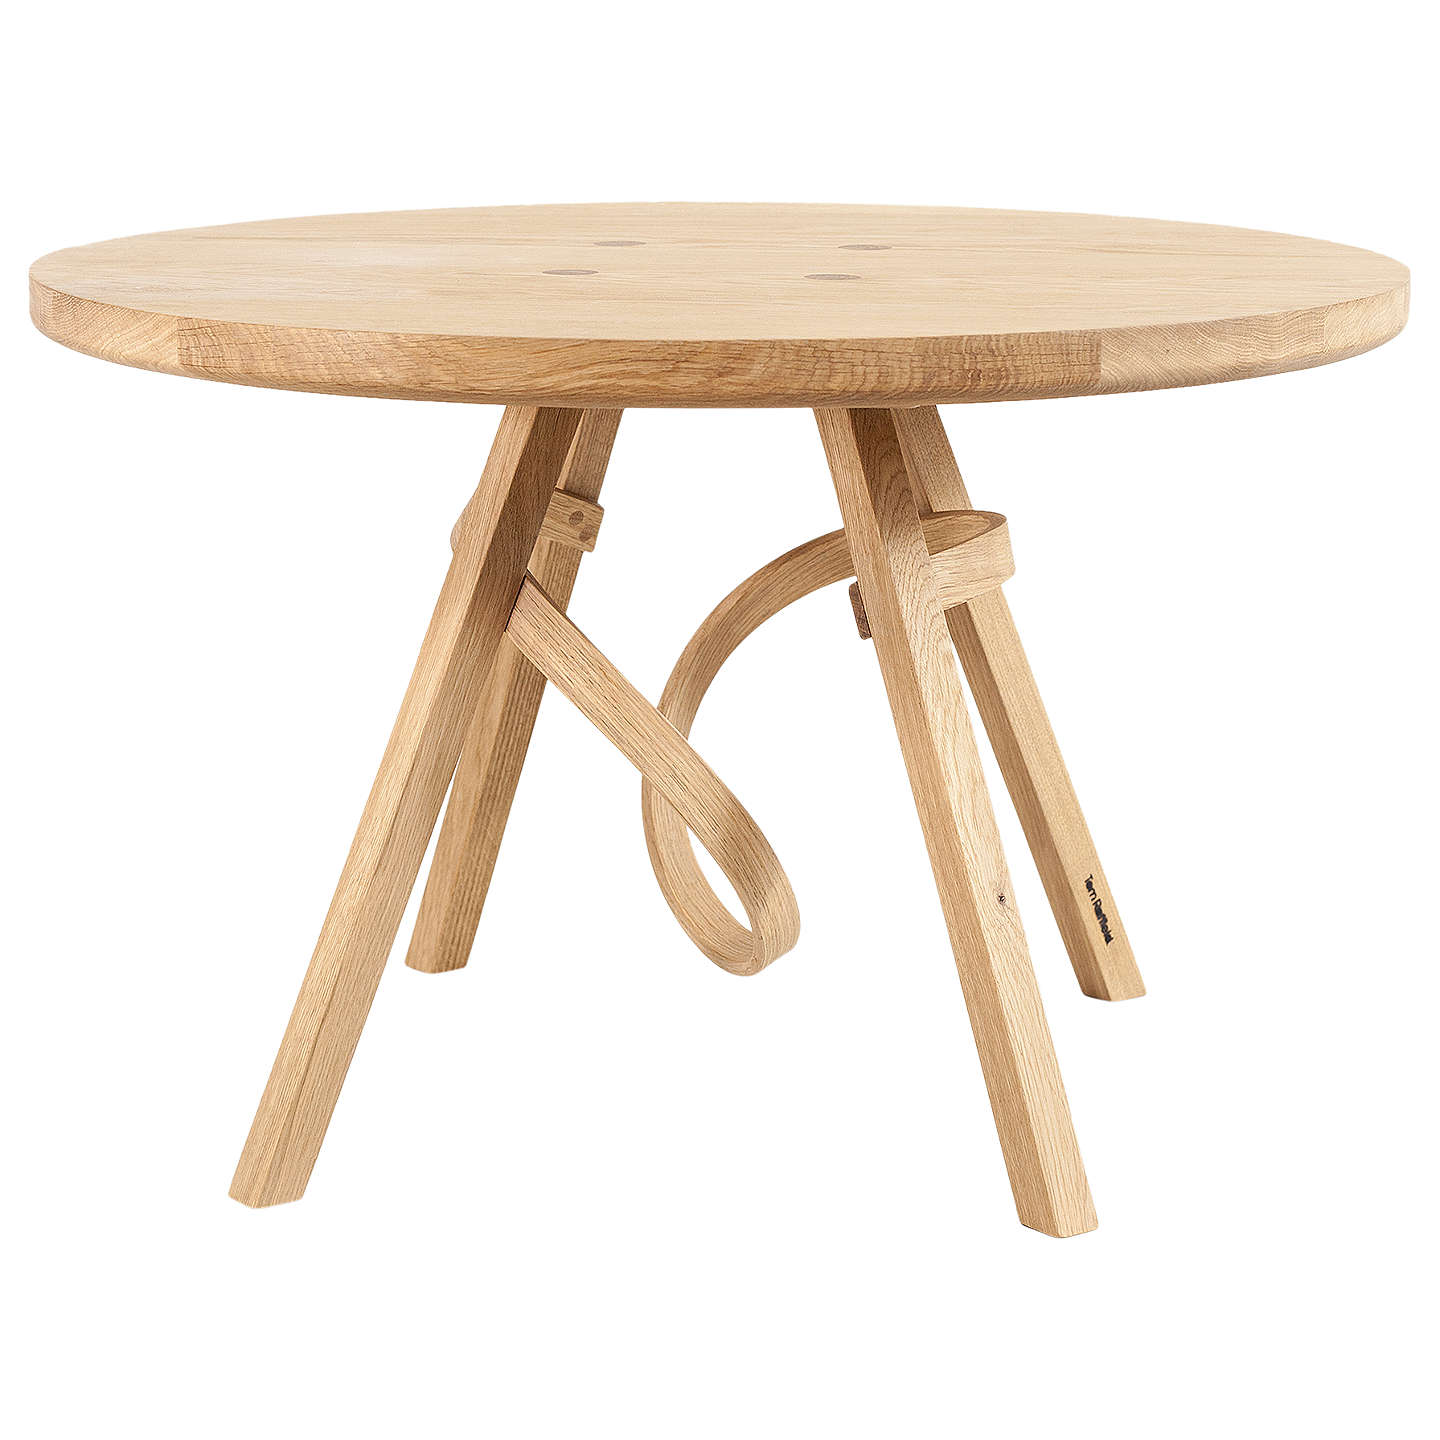 BuyTom Raffield May Coffee Table Online at johnlewis.com